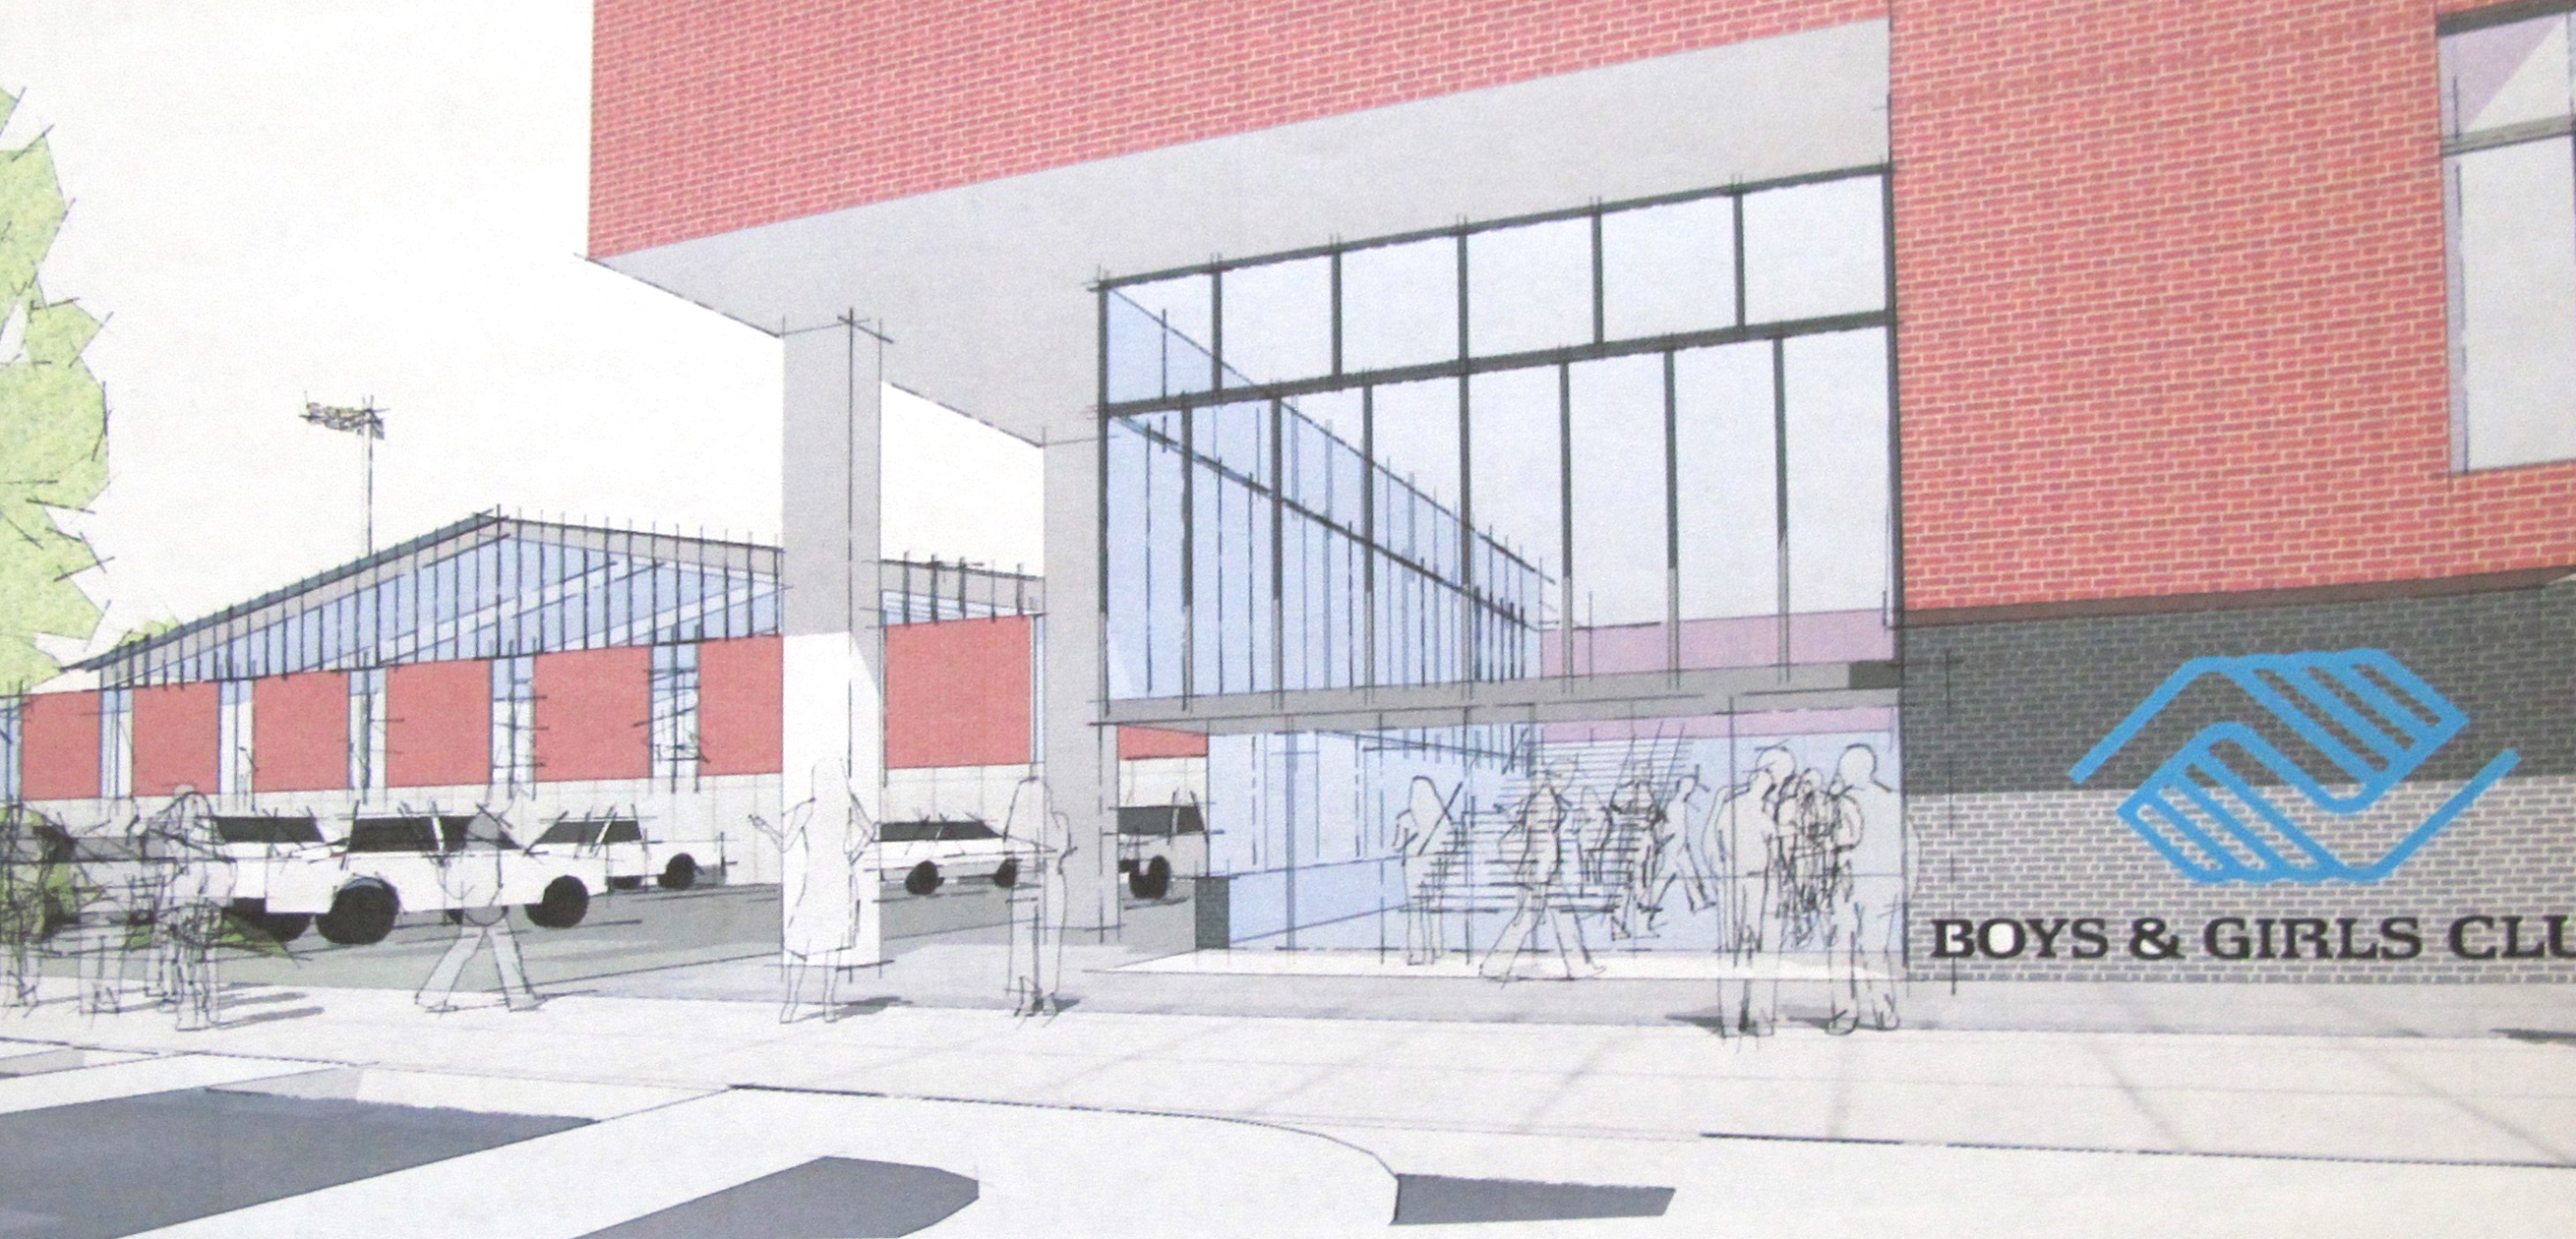 Rendering, from 2013, of the entrance to the Germantown Boys & Girls Club